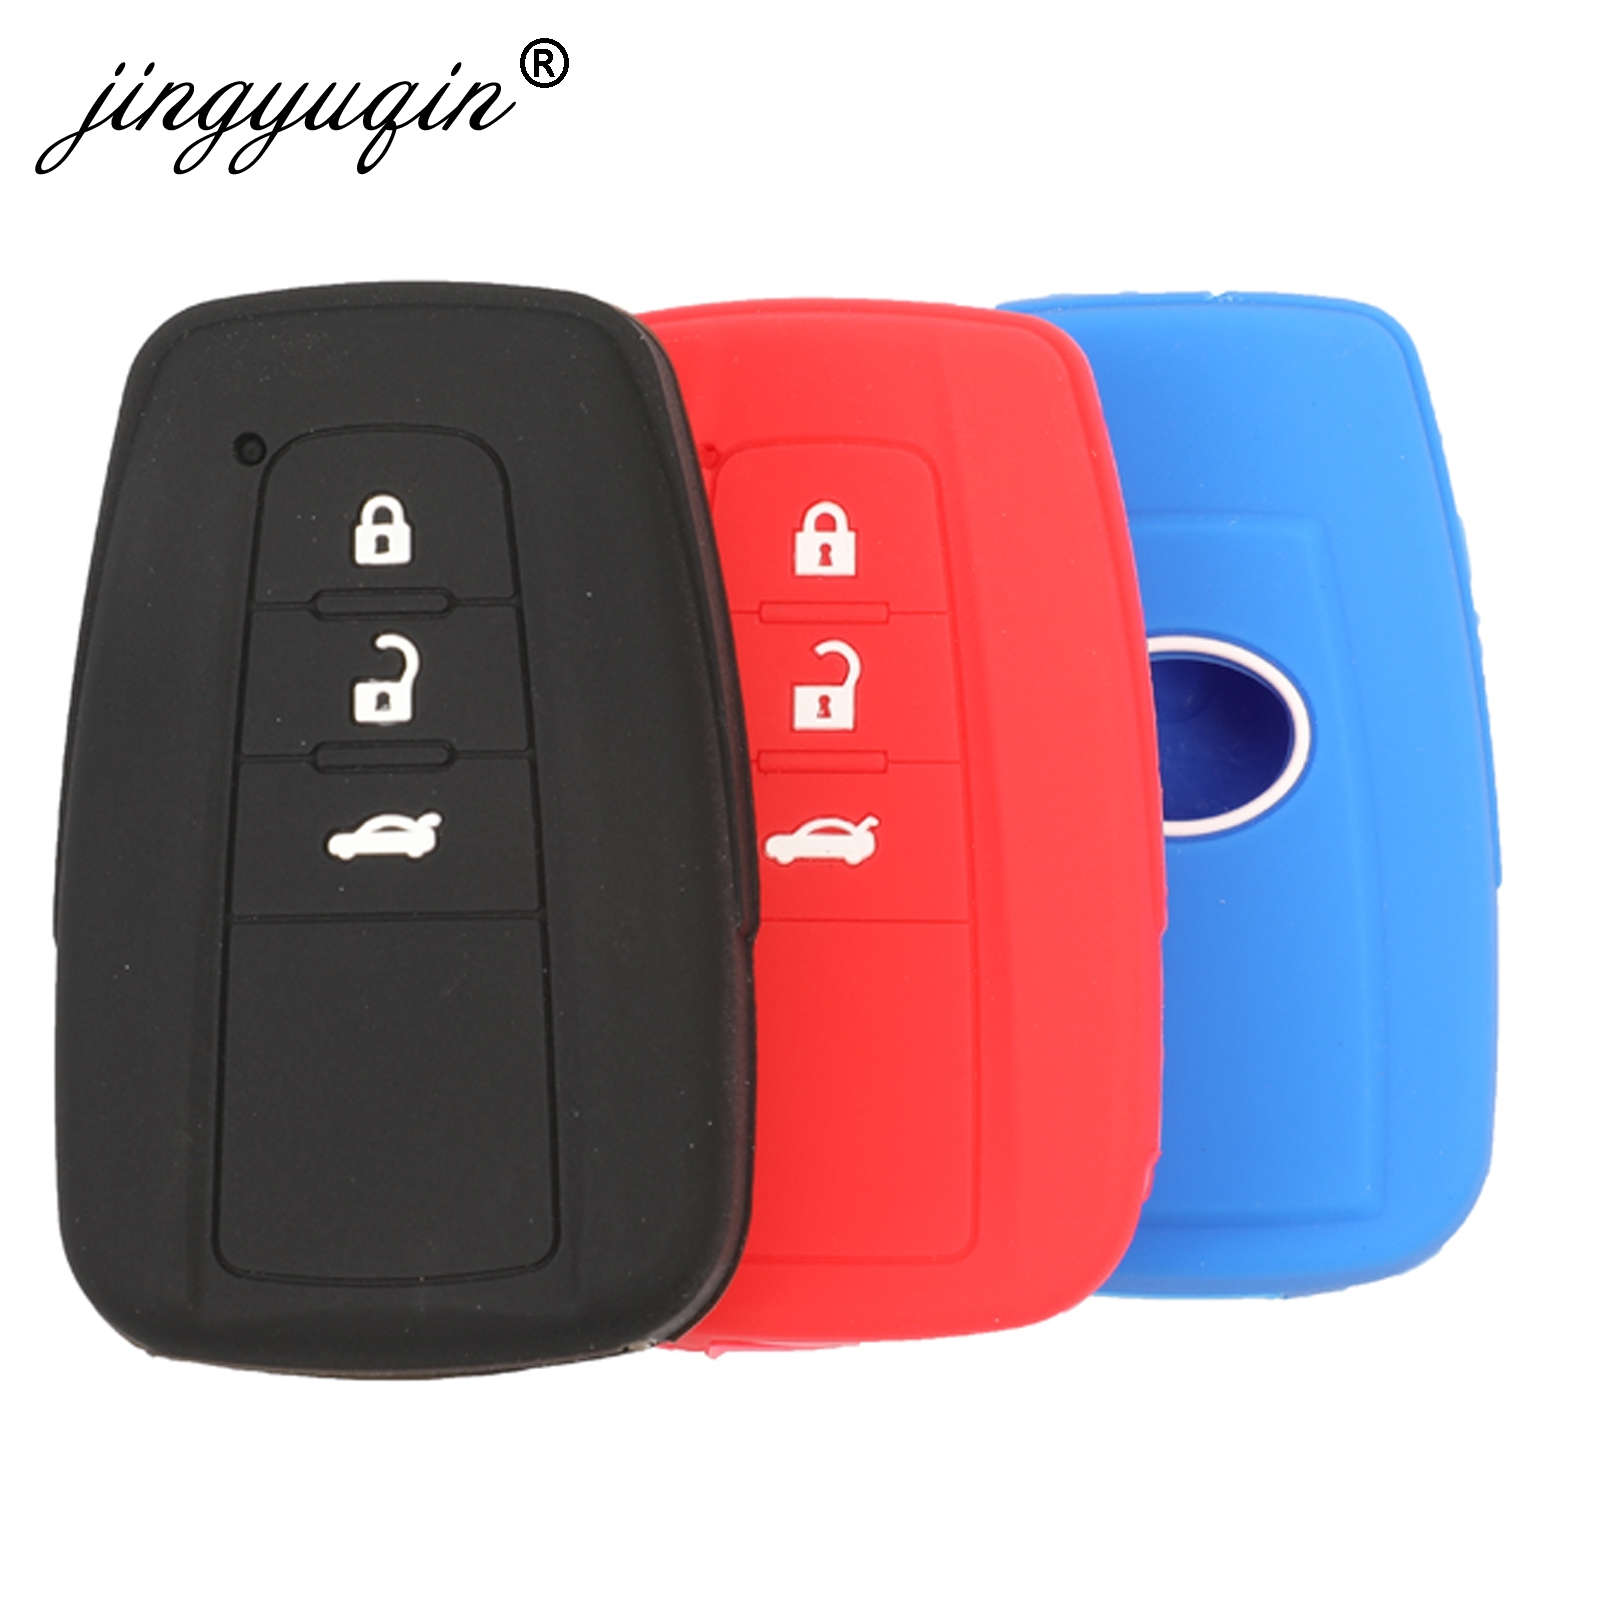 Silicone Key Case Fob For Tesla Model X Keyless Remote Key Cover Shell Skin Sleeve Protector 2016-2018 2019